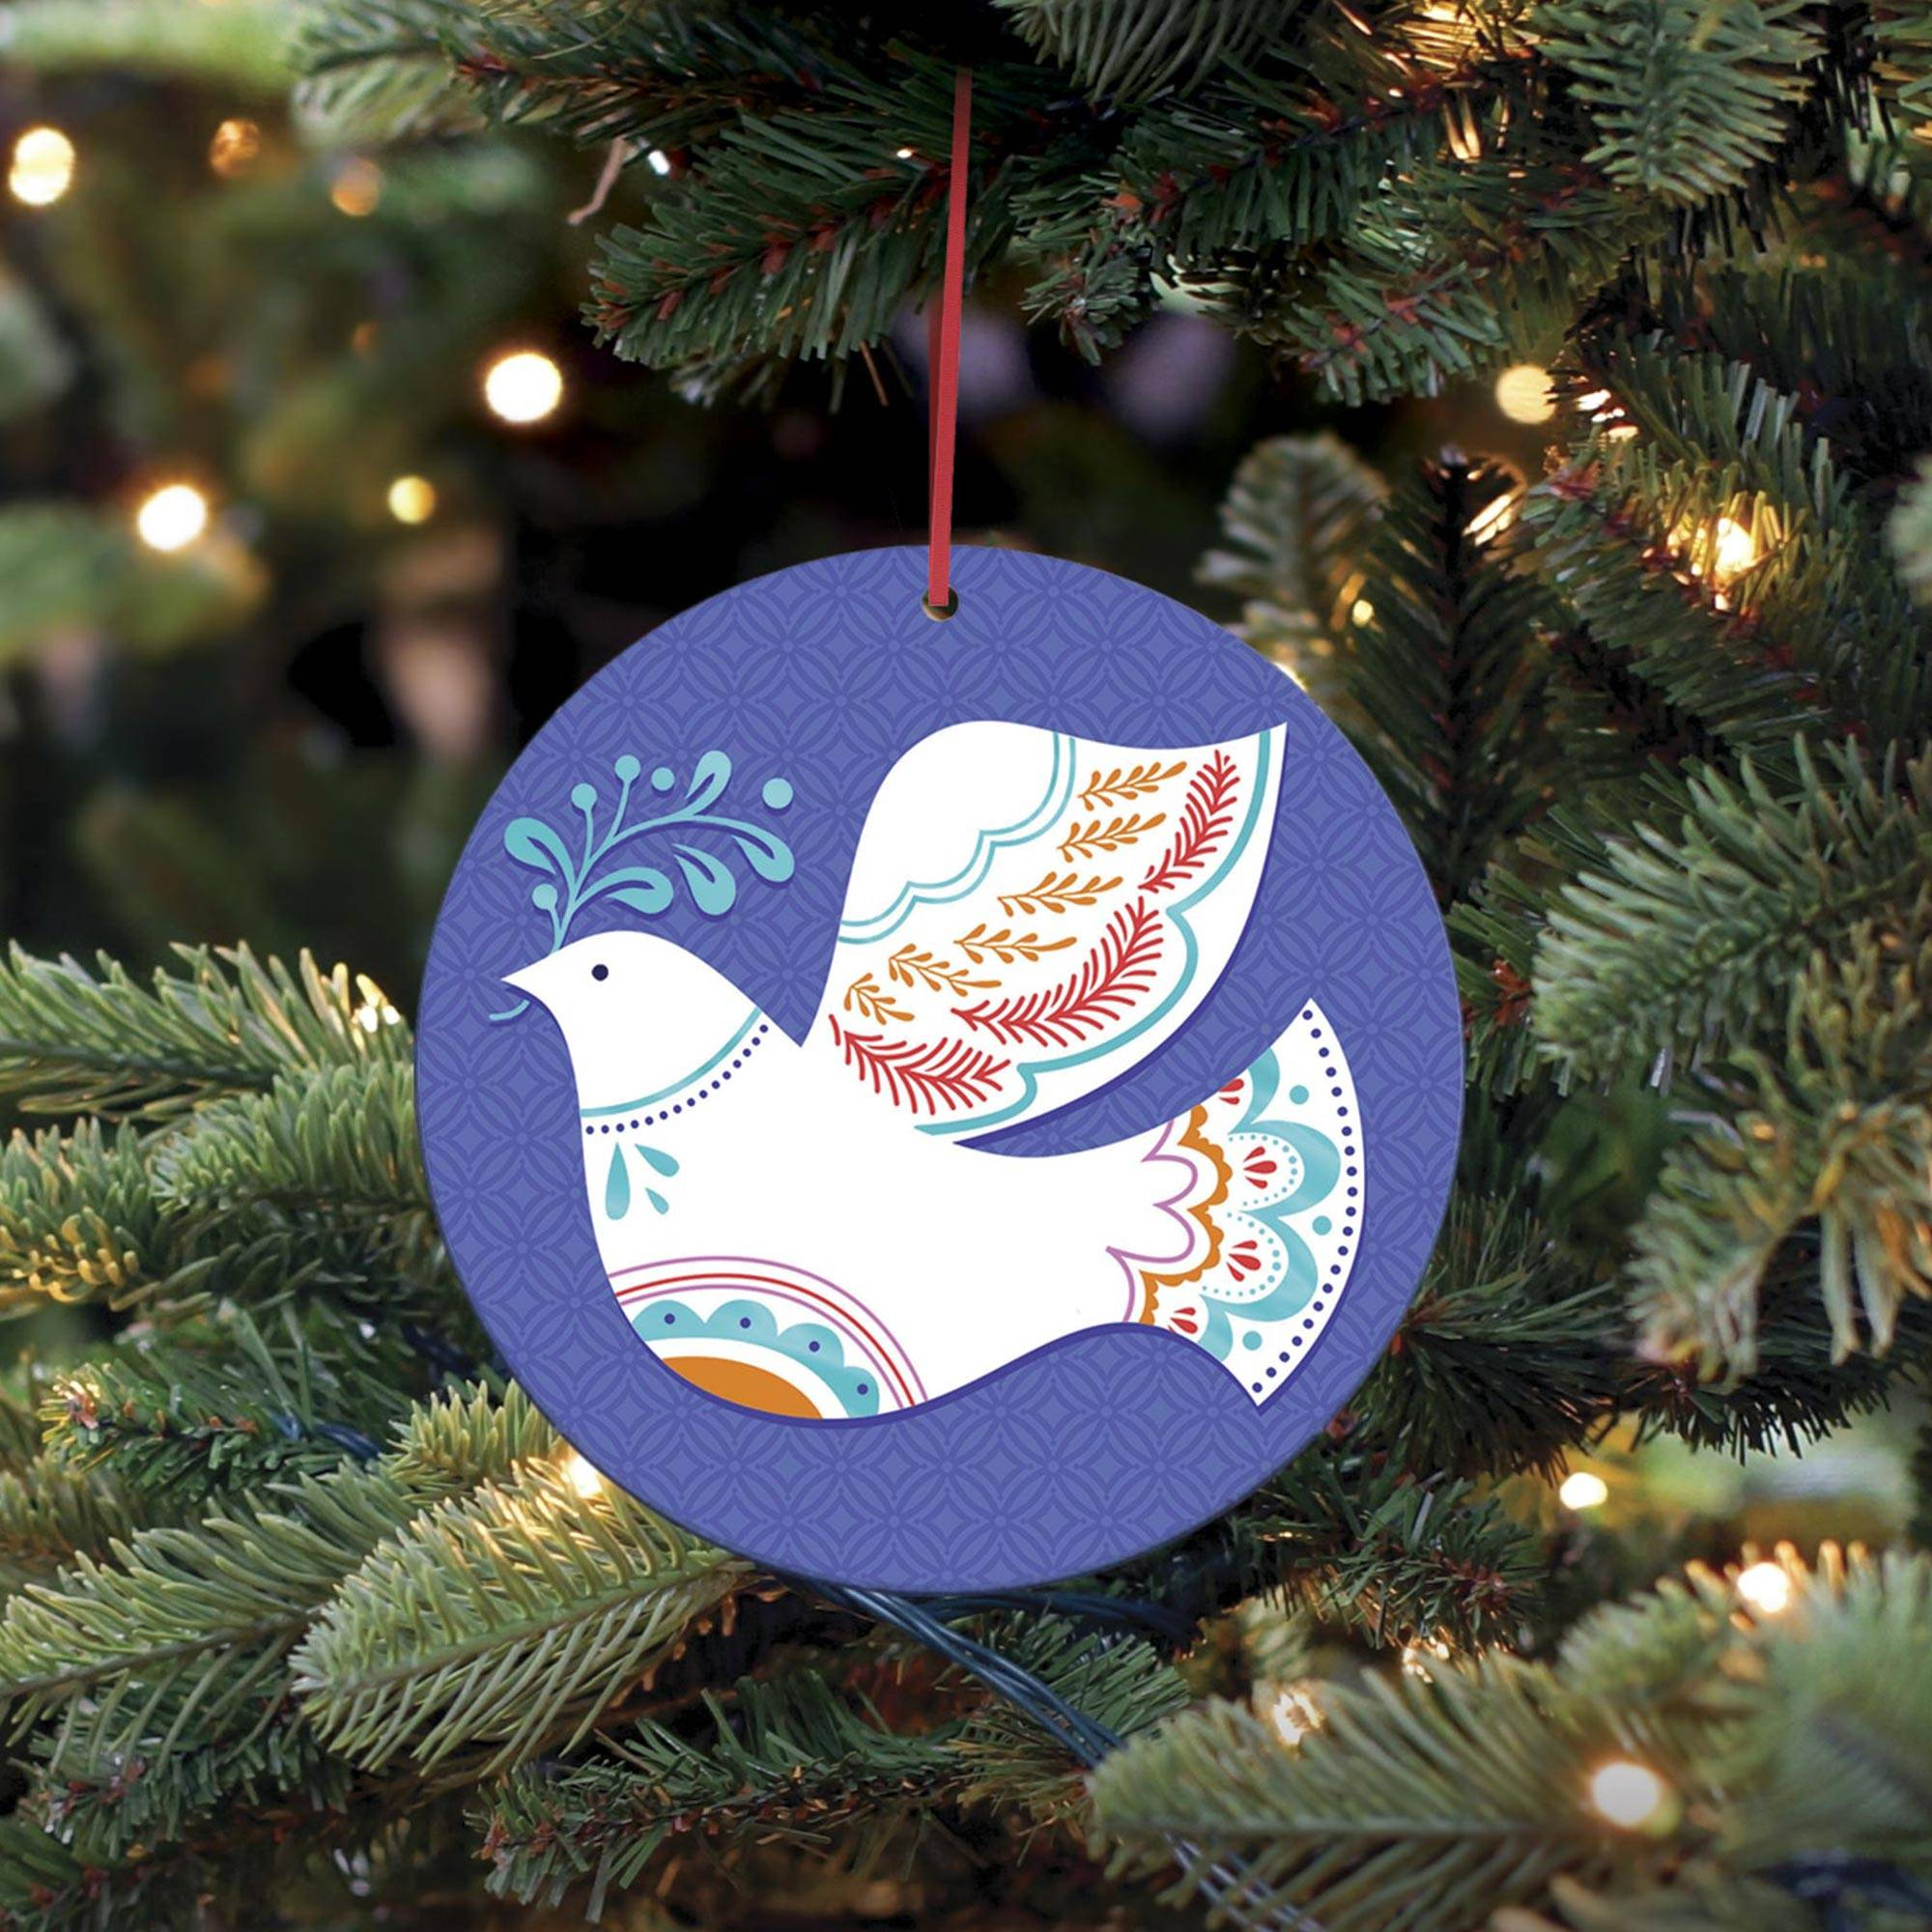 Peace Christmas Ornament.Unicef Holiday Ornament Cards Boxed Set Of 10 Peace In Every Heart